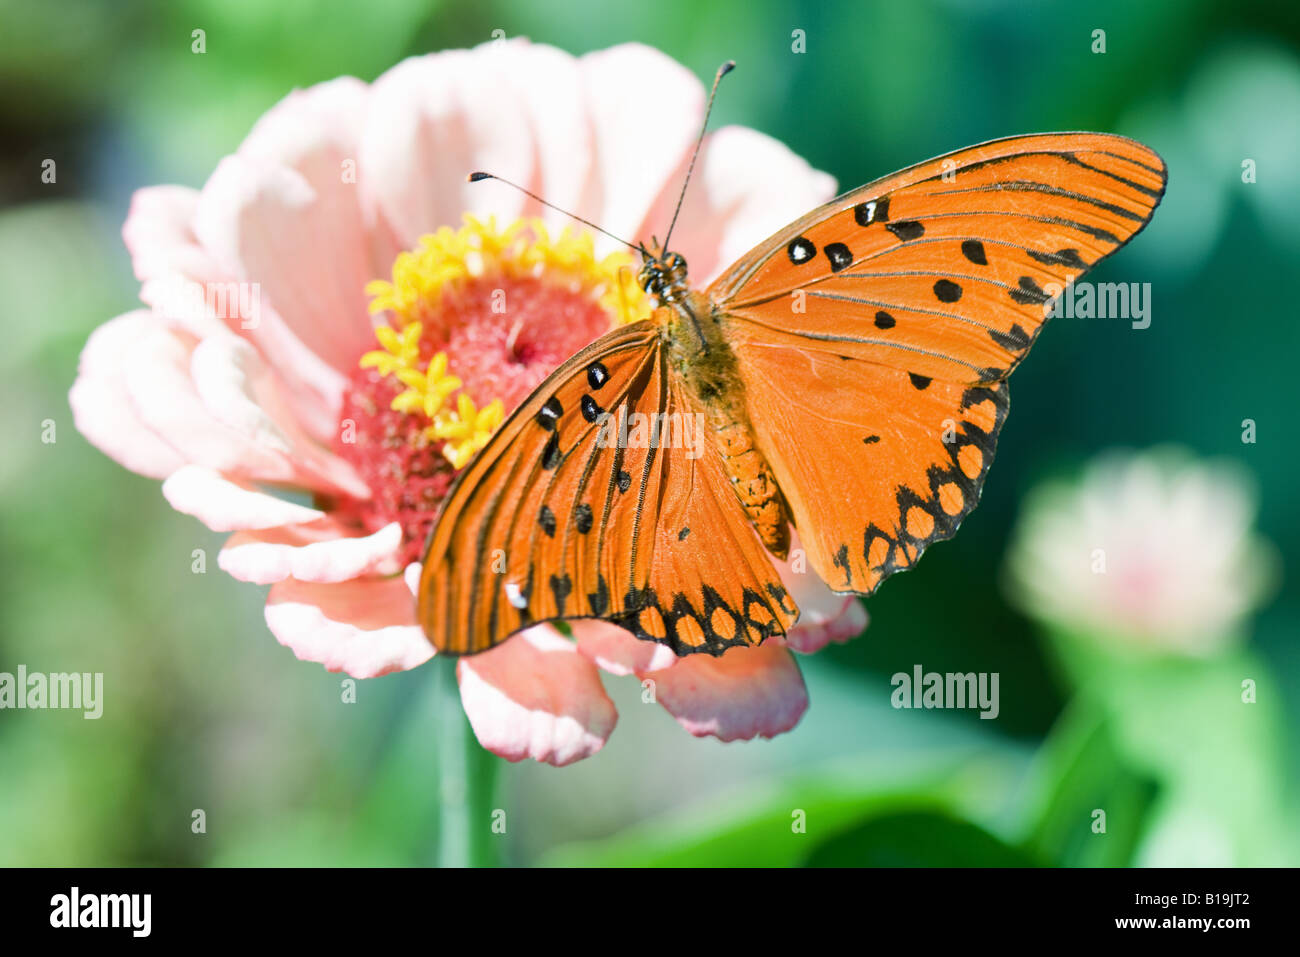 Gulf Fritillary butterfly on flower - Stock Image